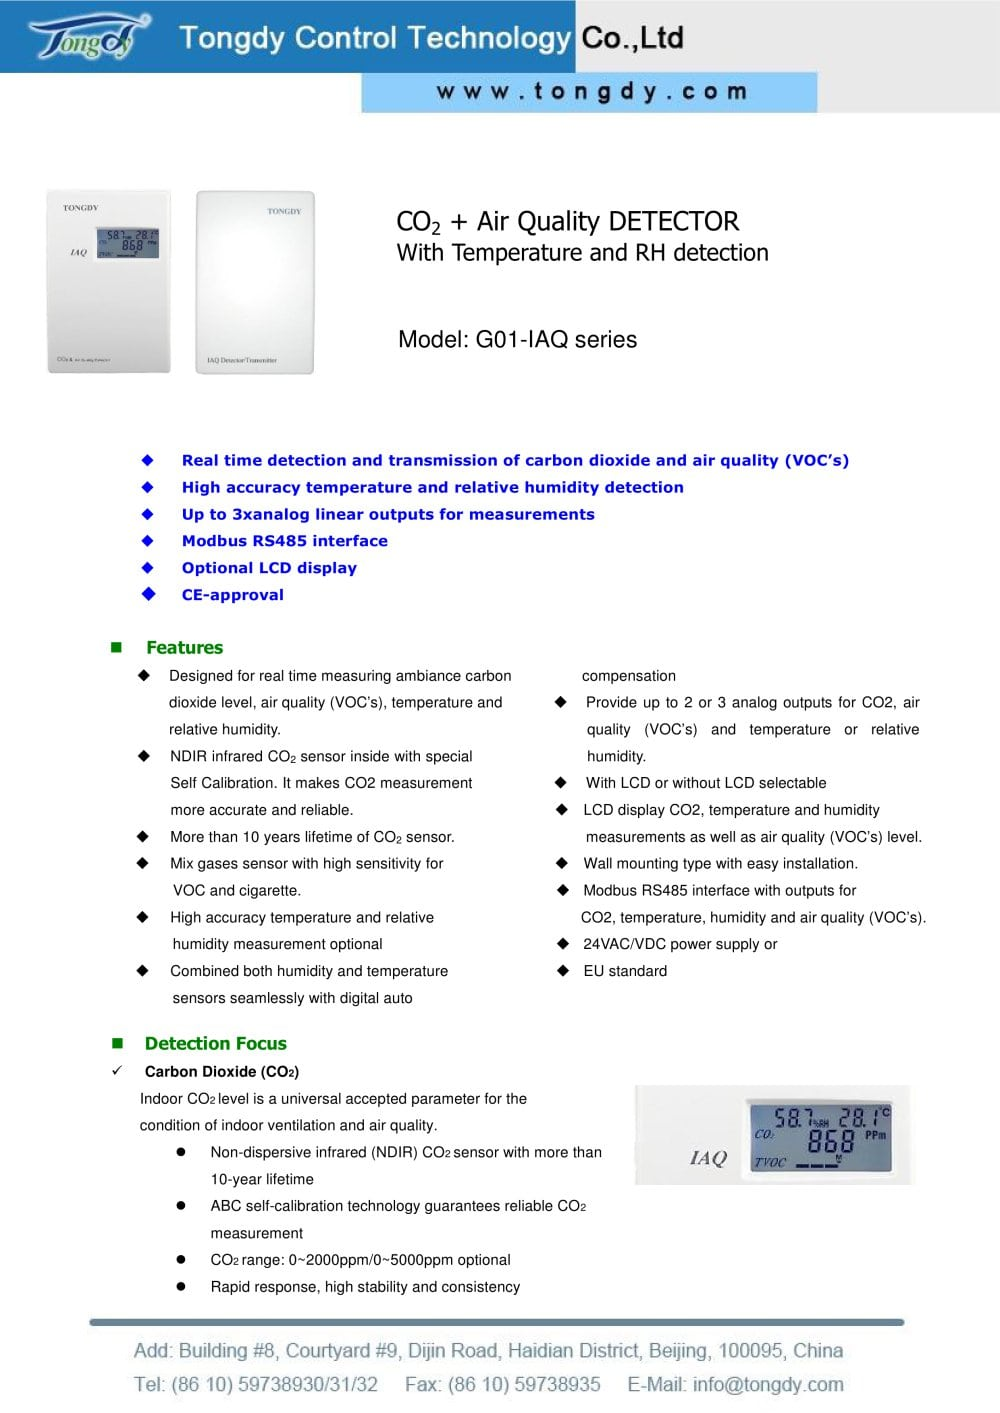 Wall Mount Co2 Vocs Transmitter Tongdy Control Technology Pdf Temperature Controller Wiring As Well 1 4 Pages